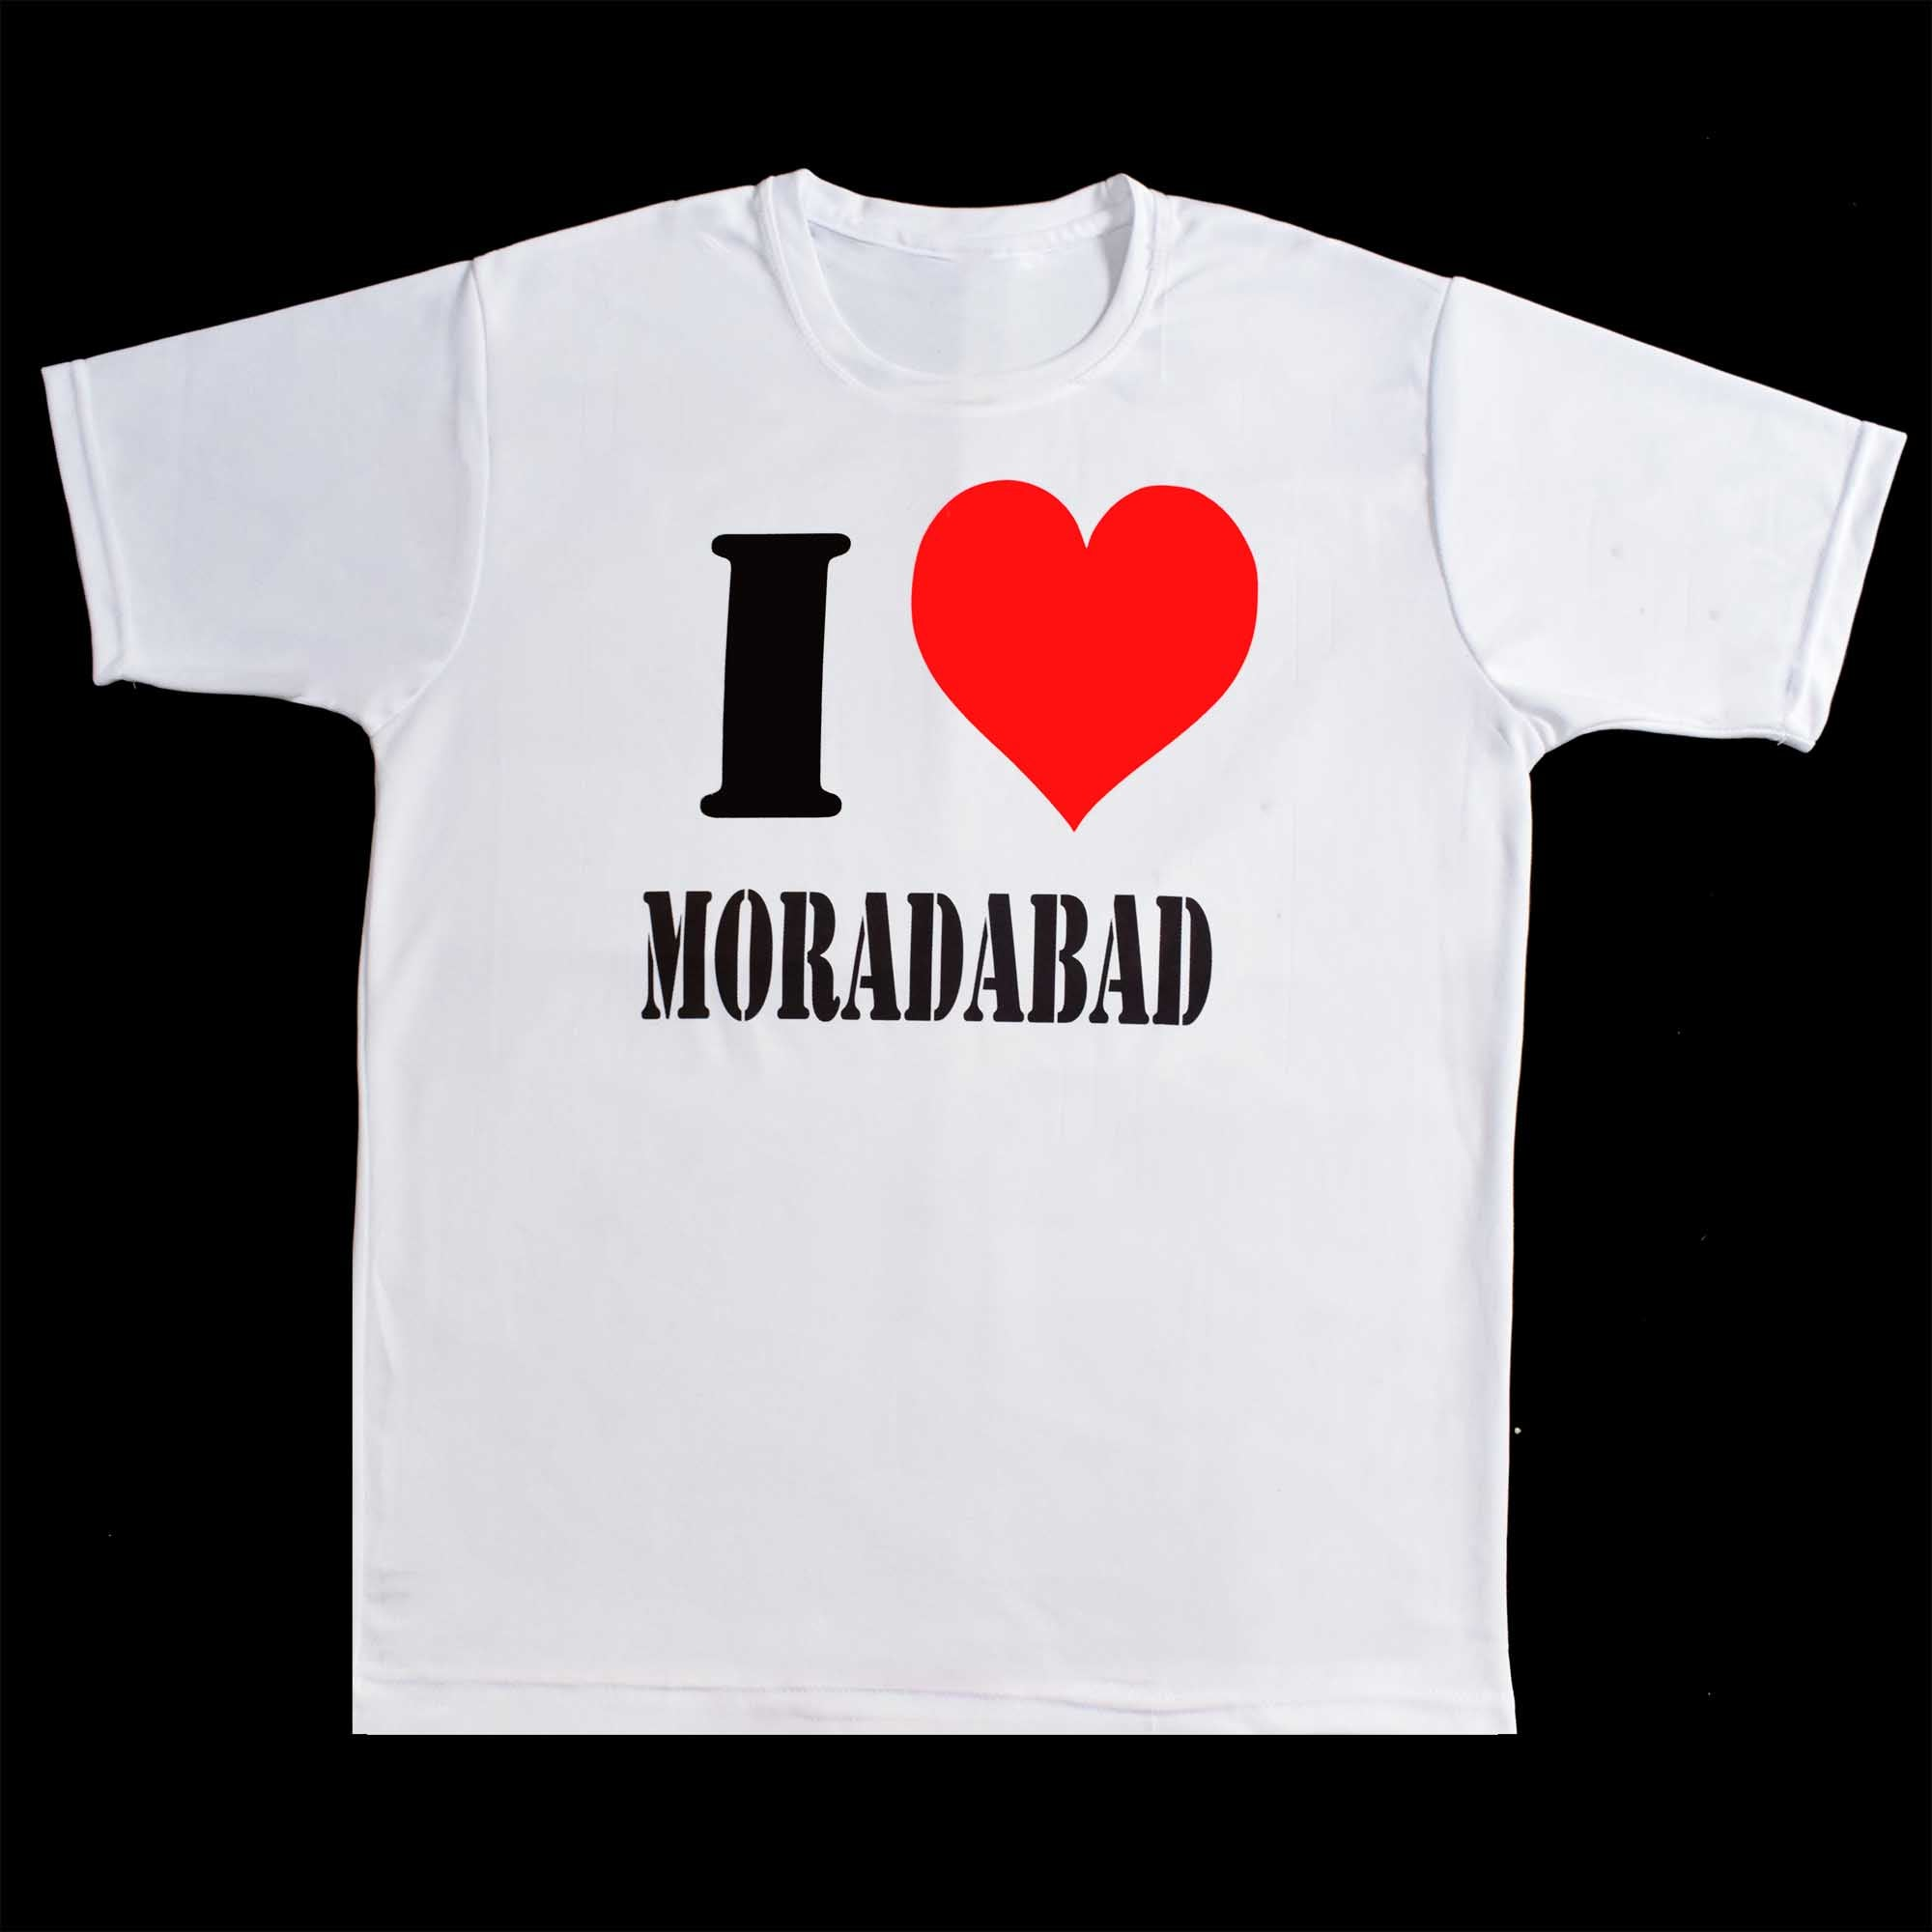 Buy T-Shirt Only For Moradabad